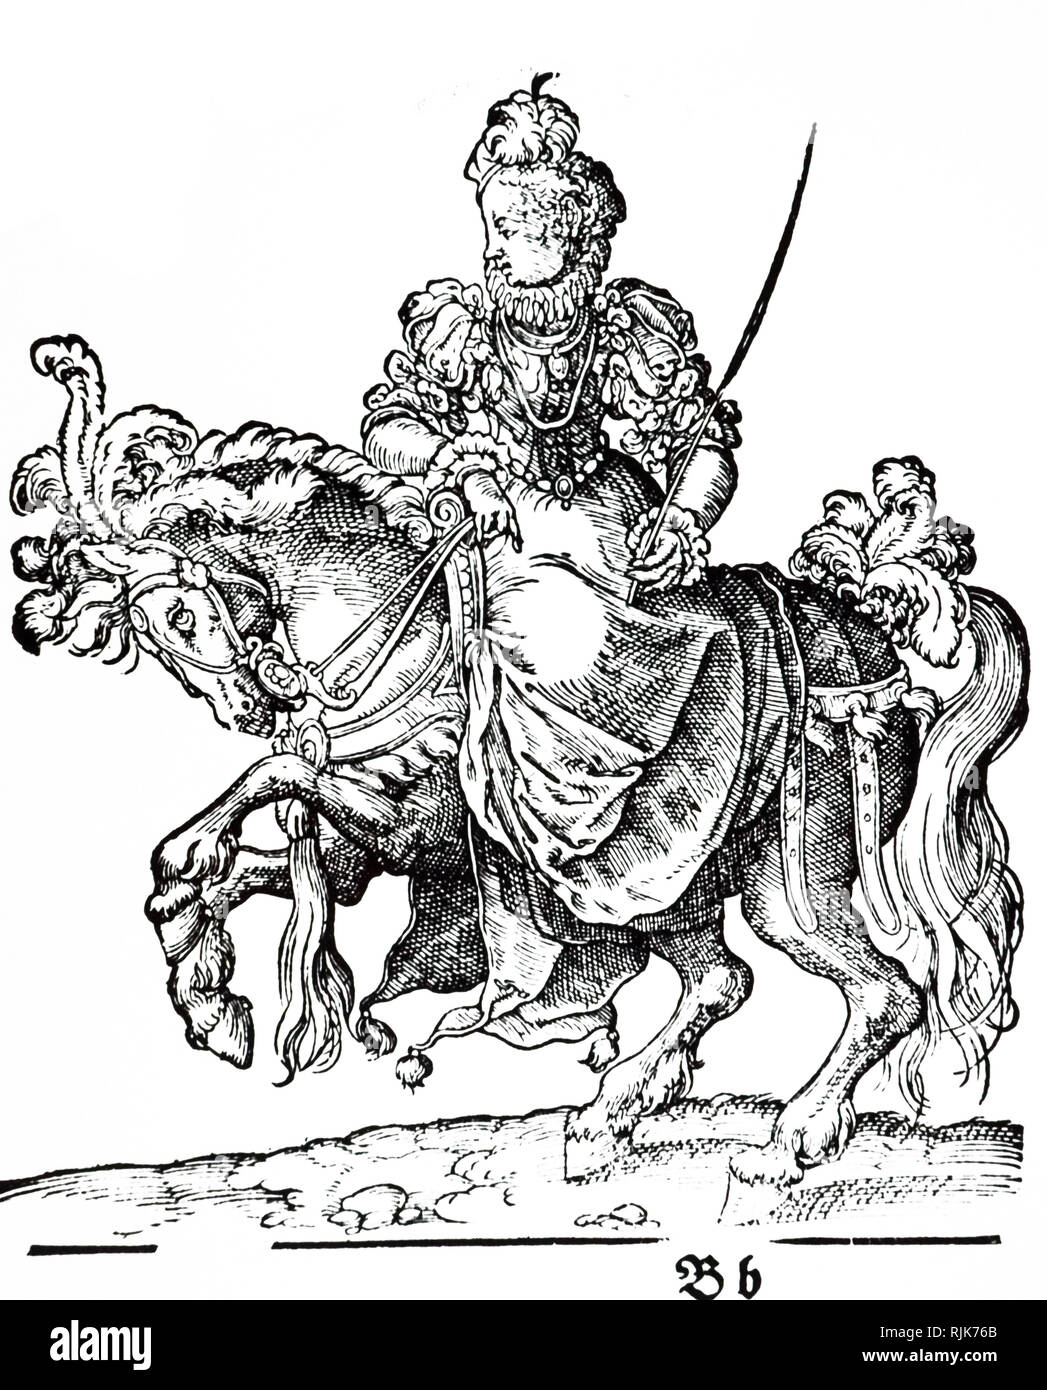 A woodcut engraving depicting a lady riding side-saddle. Woodcut by Jost Amman (1539-1591) a Swiss-German artist. Dated 16th century - Stock Image